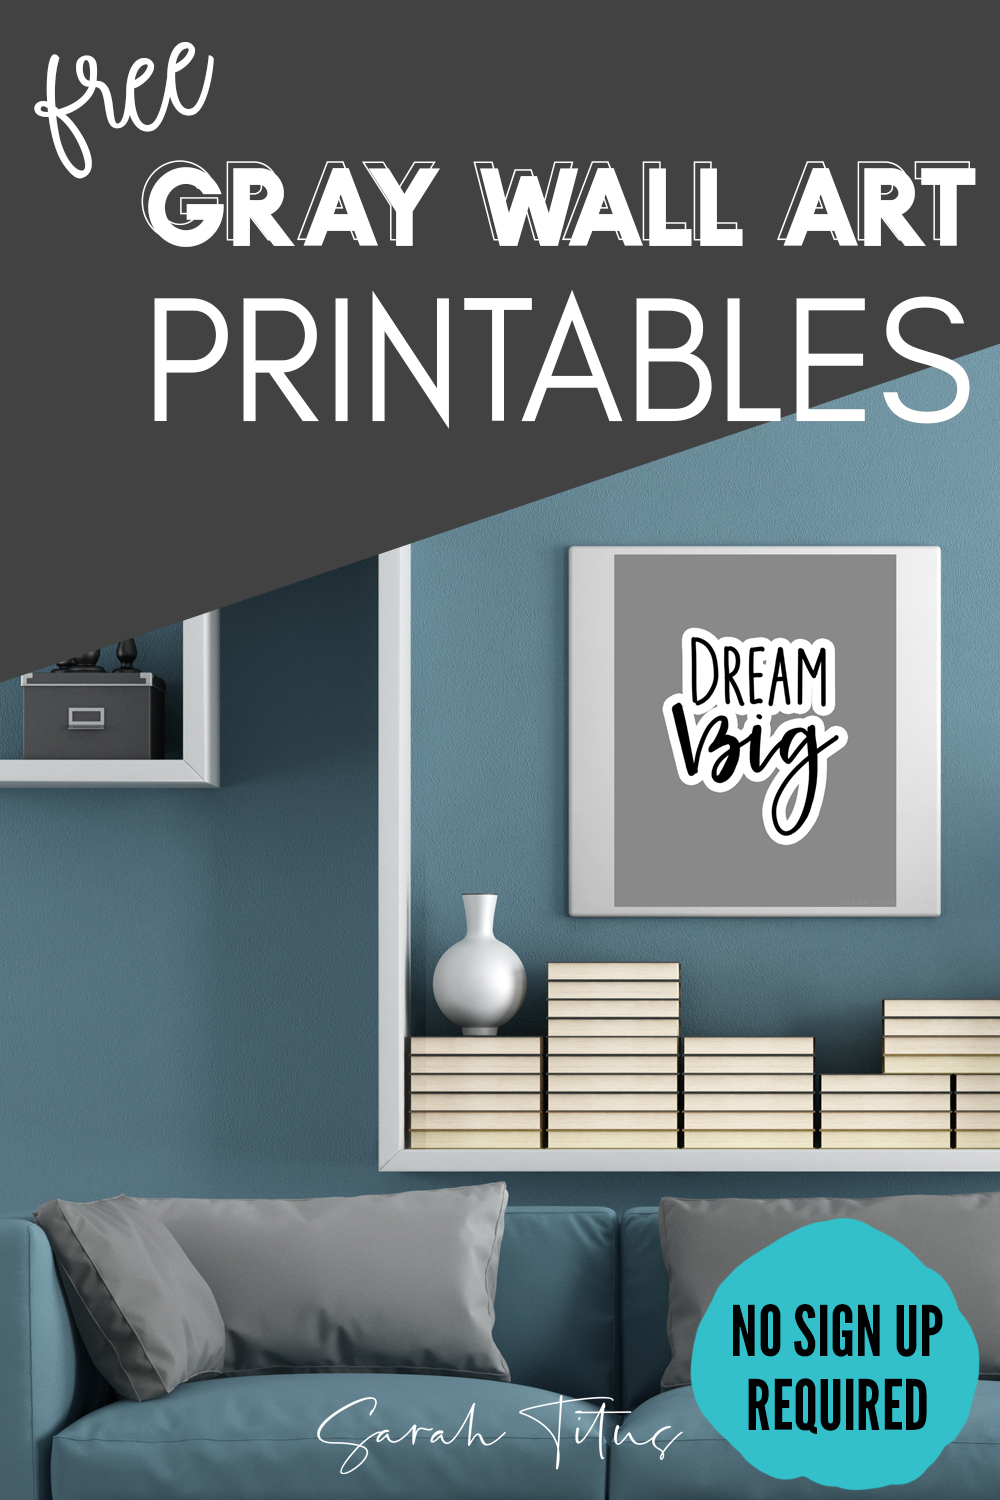 Gray Black And White Wall Art Printables Sarah Titus From Homeless To 8 Figures